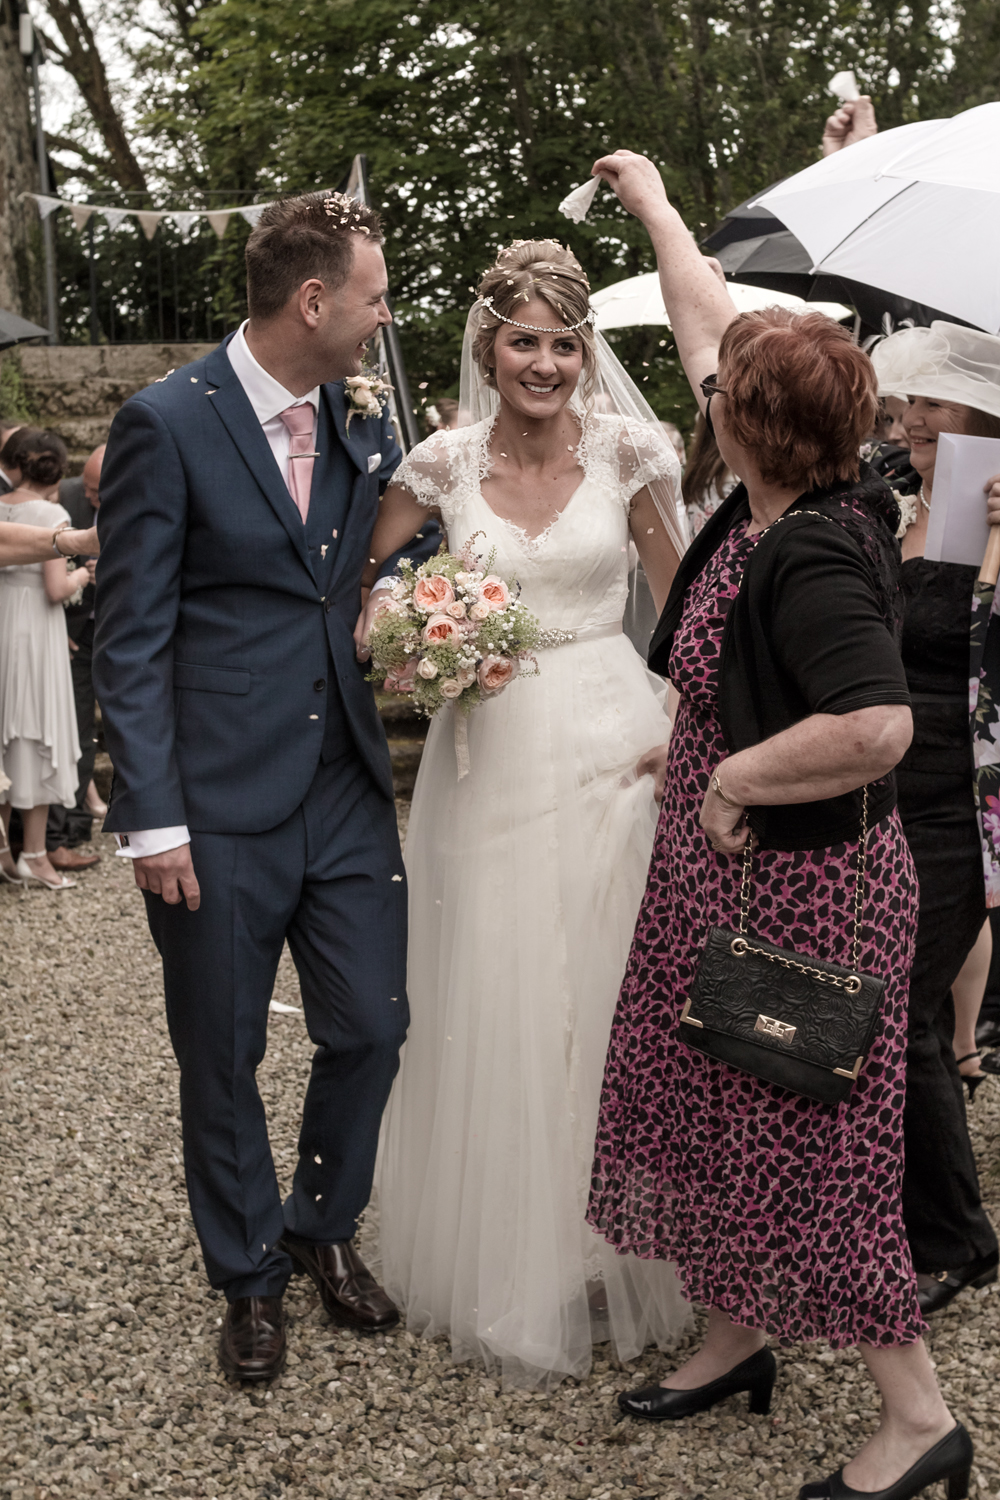 A Rustic Country Wedding at Knightor Winery - Image 18